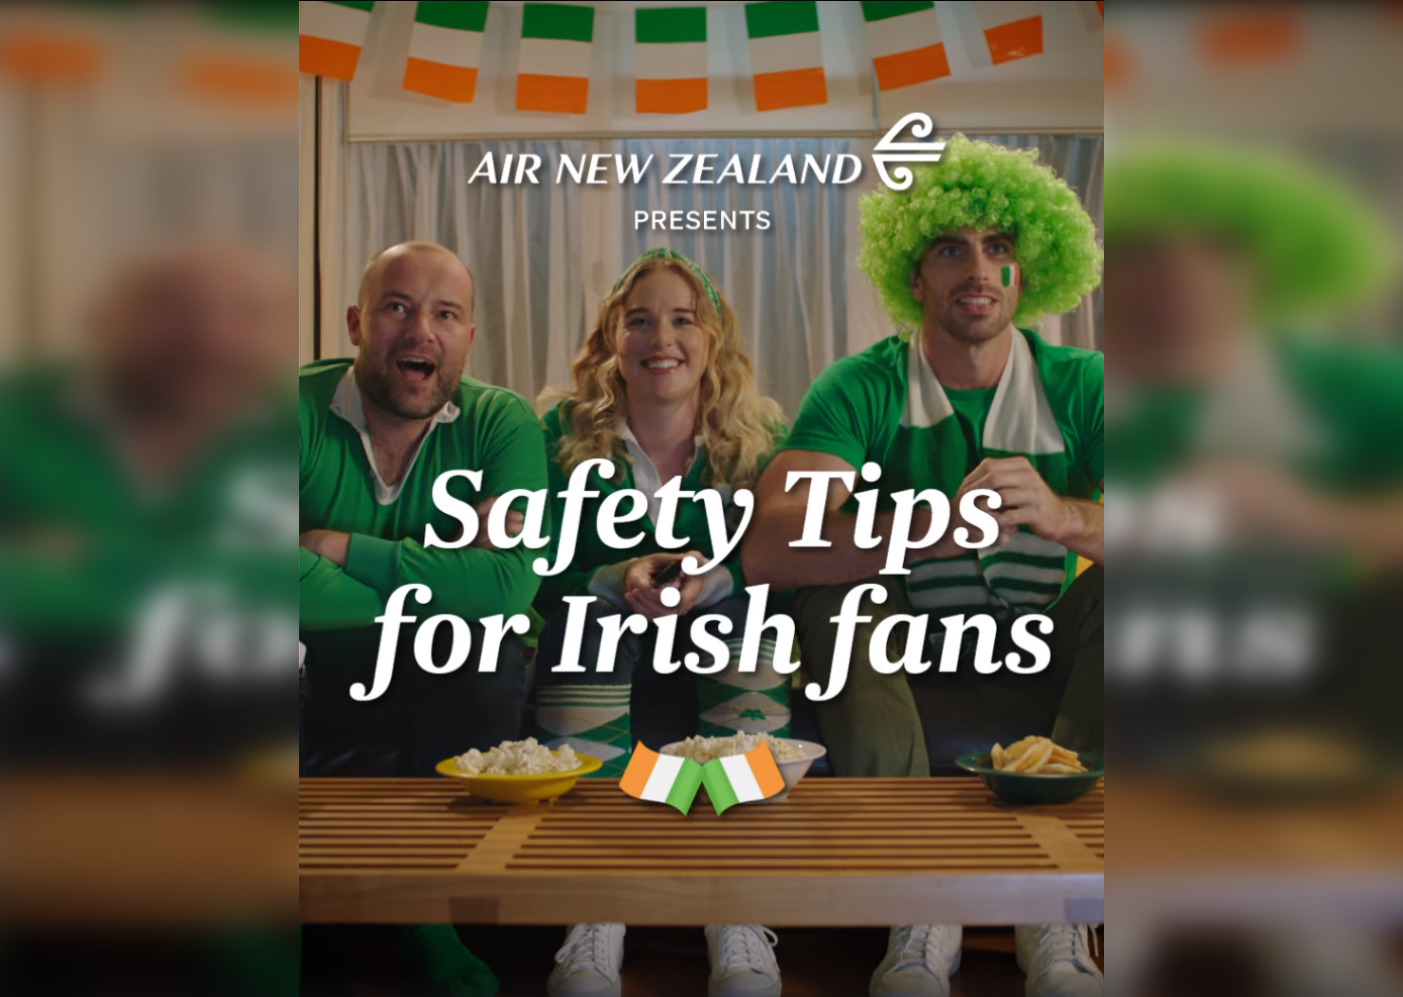 Air New Zealand's safety instructions for Ireland fans